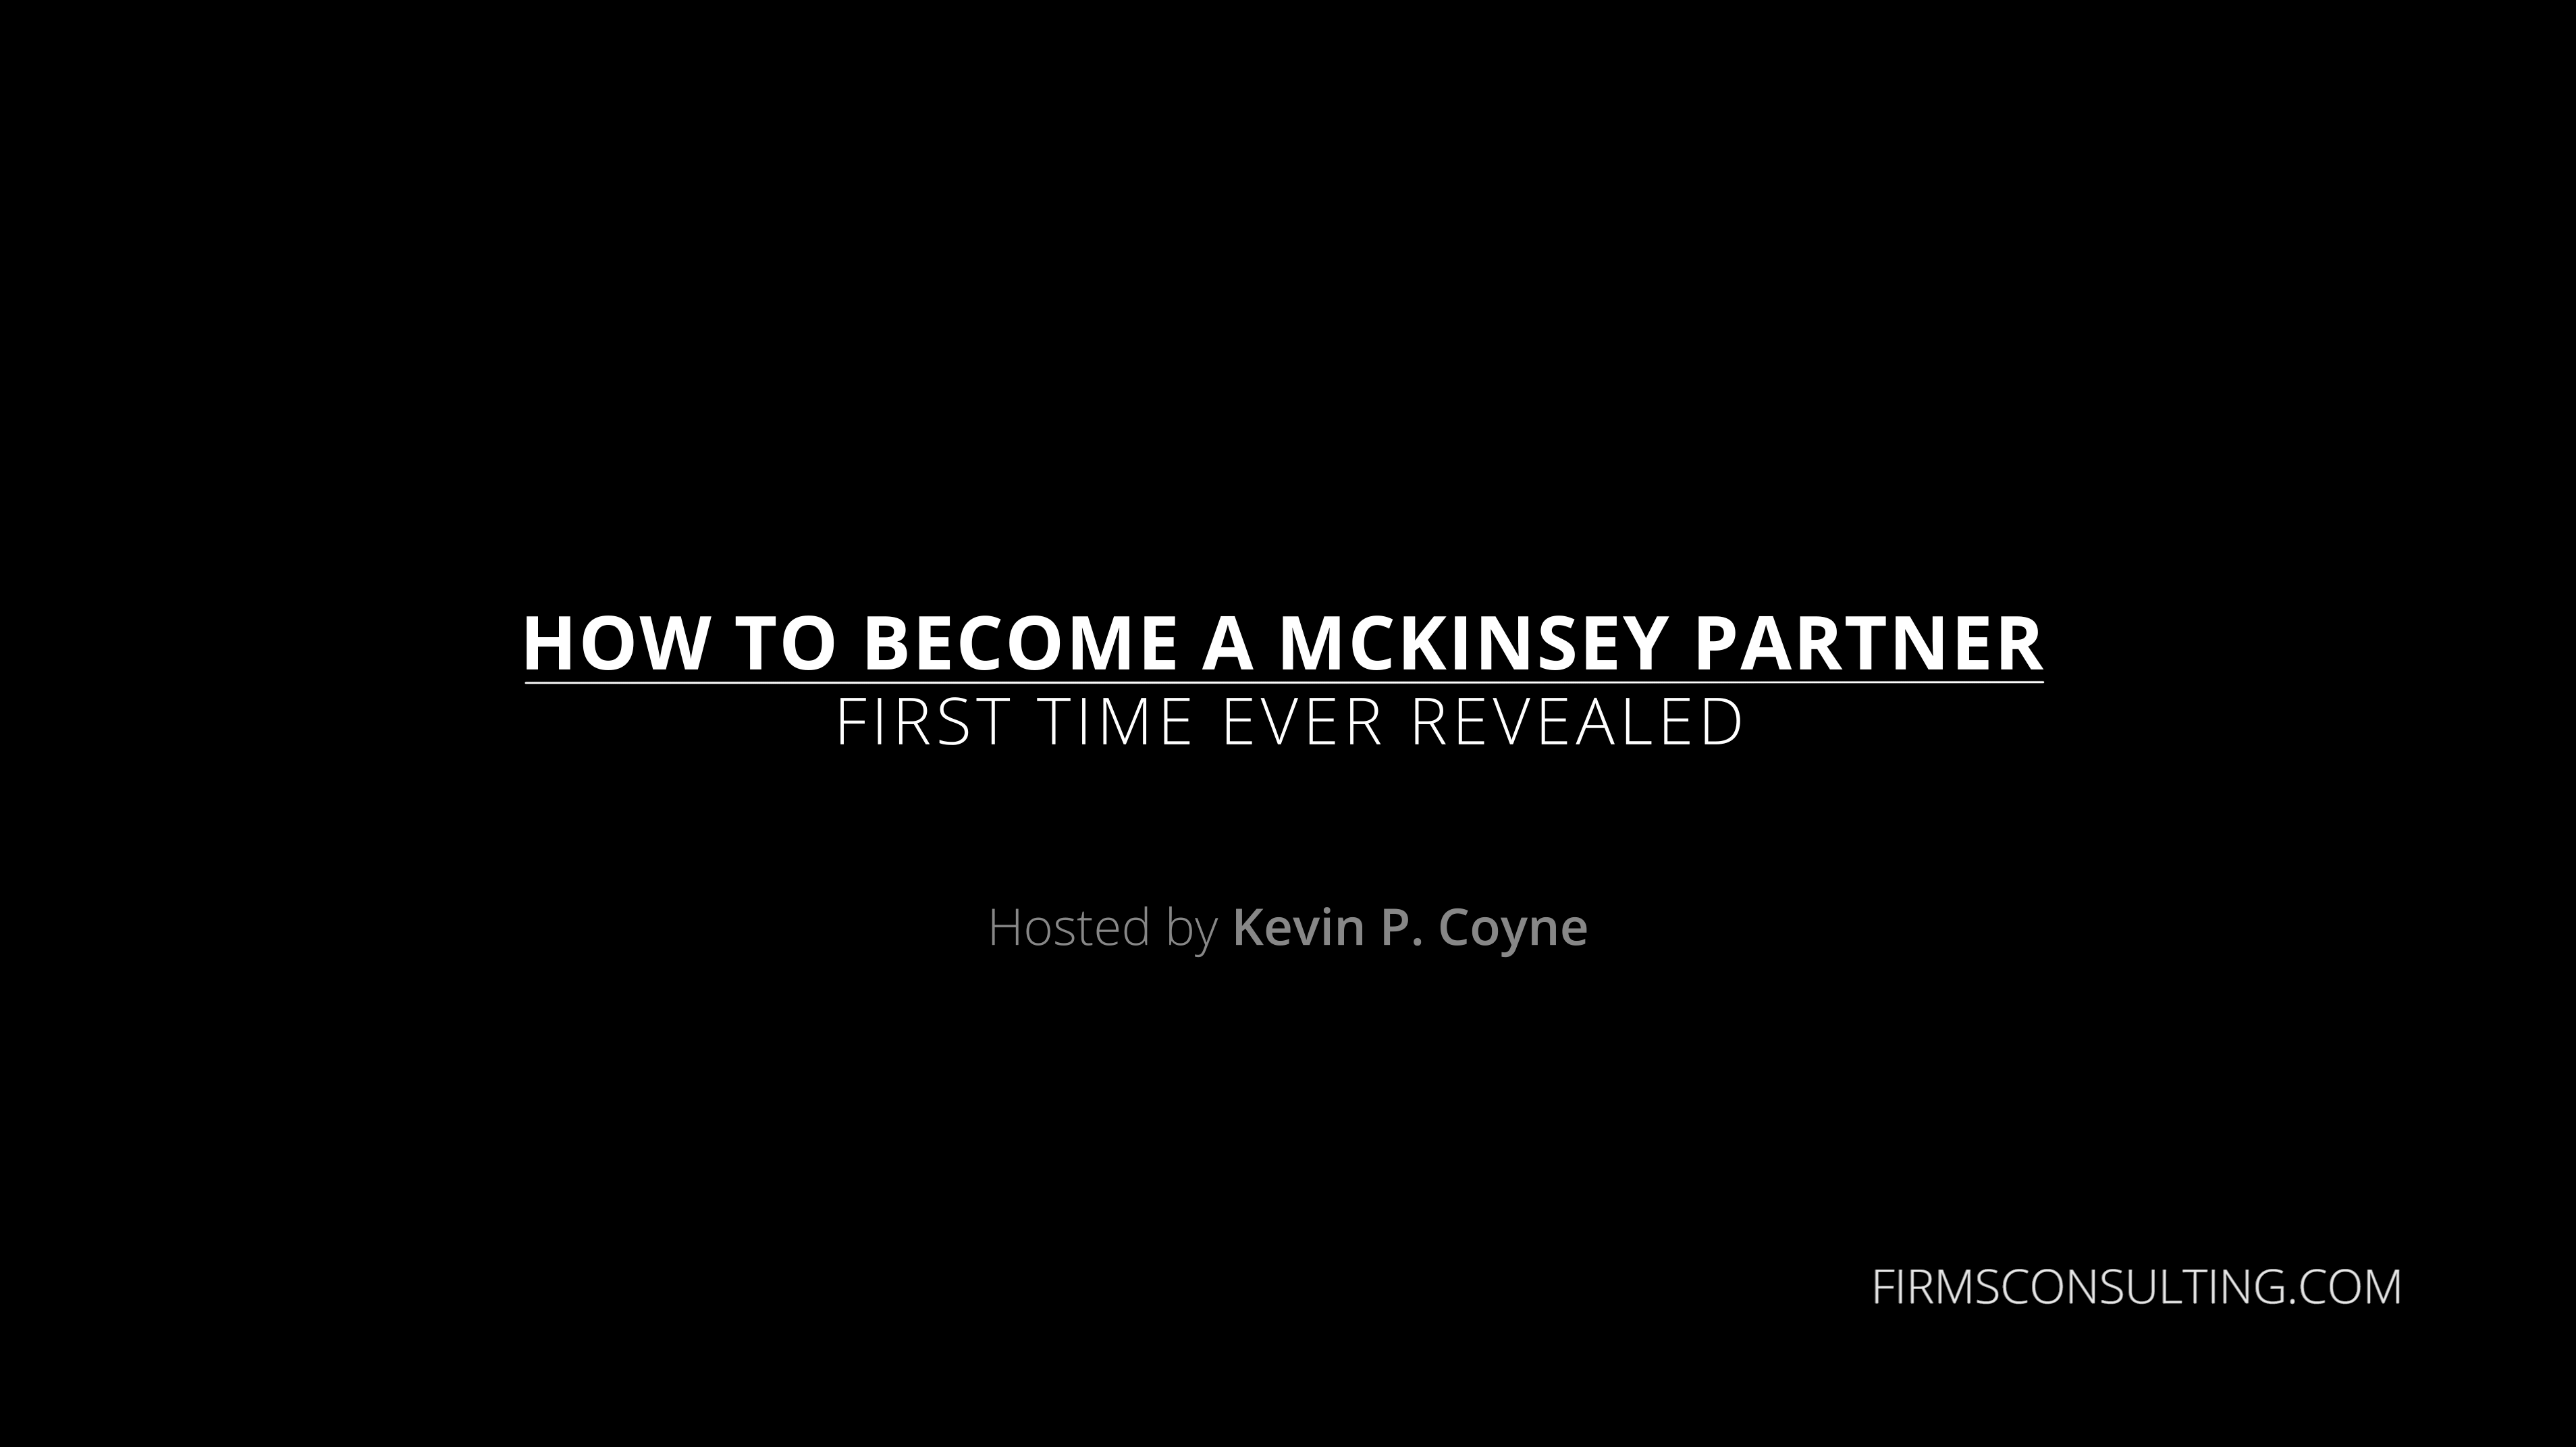 Poster for How to Become a McKinsey Partner. First Time Ever Revealed by Kevin P. Coyne